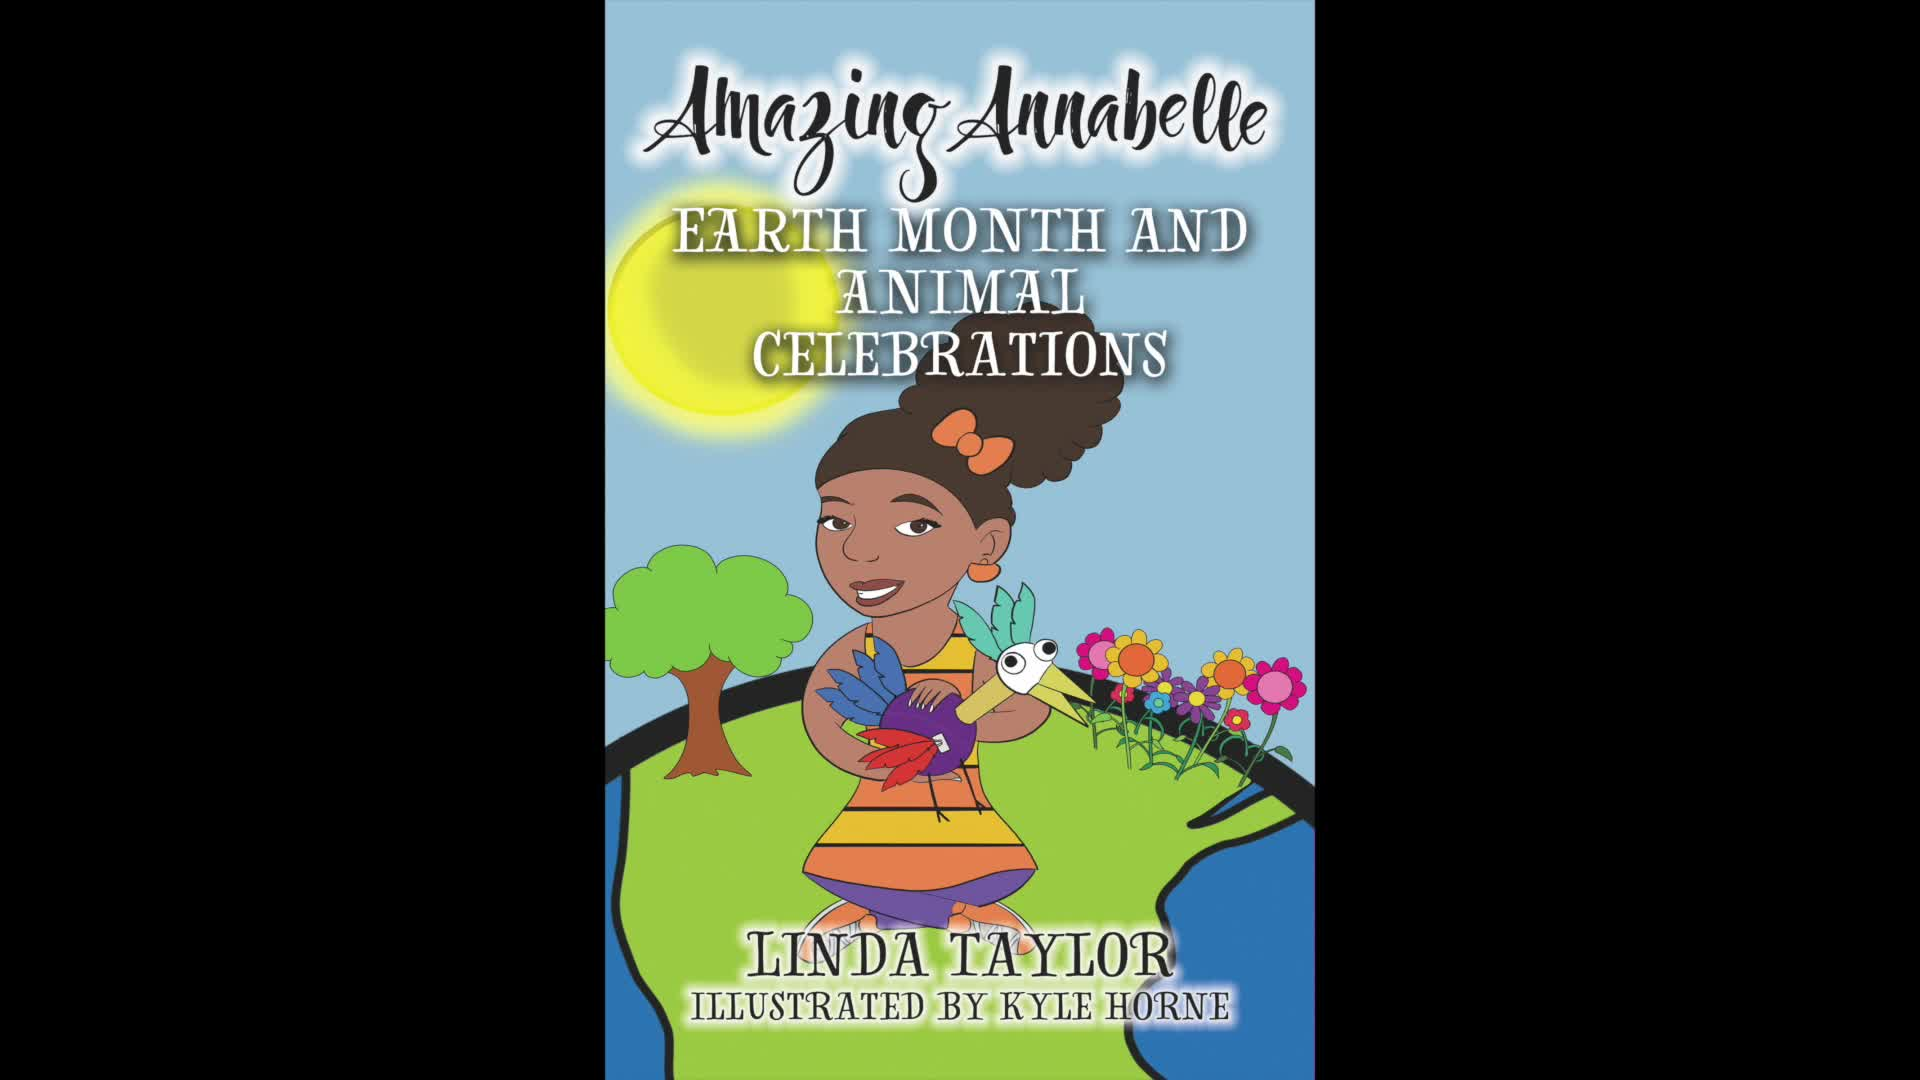 Amazing Annabelle Earth Month And Animal Celebrations Chapter 8